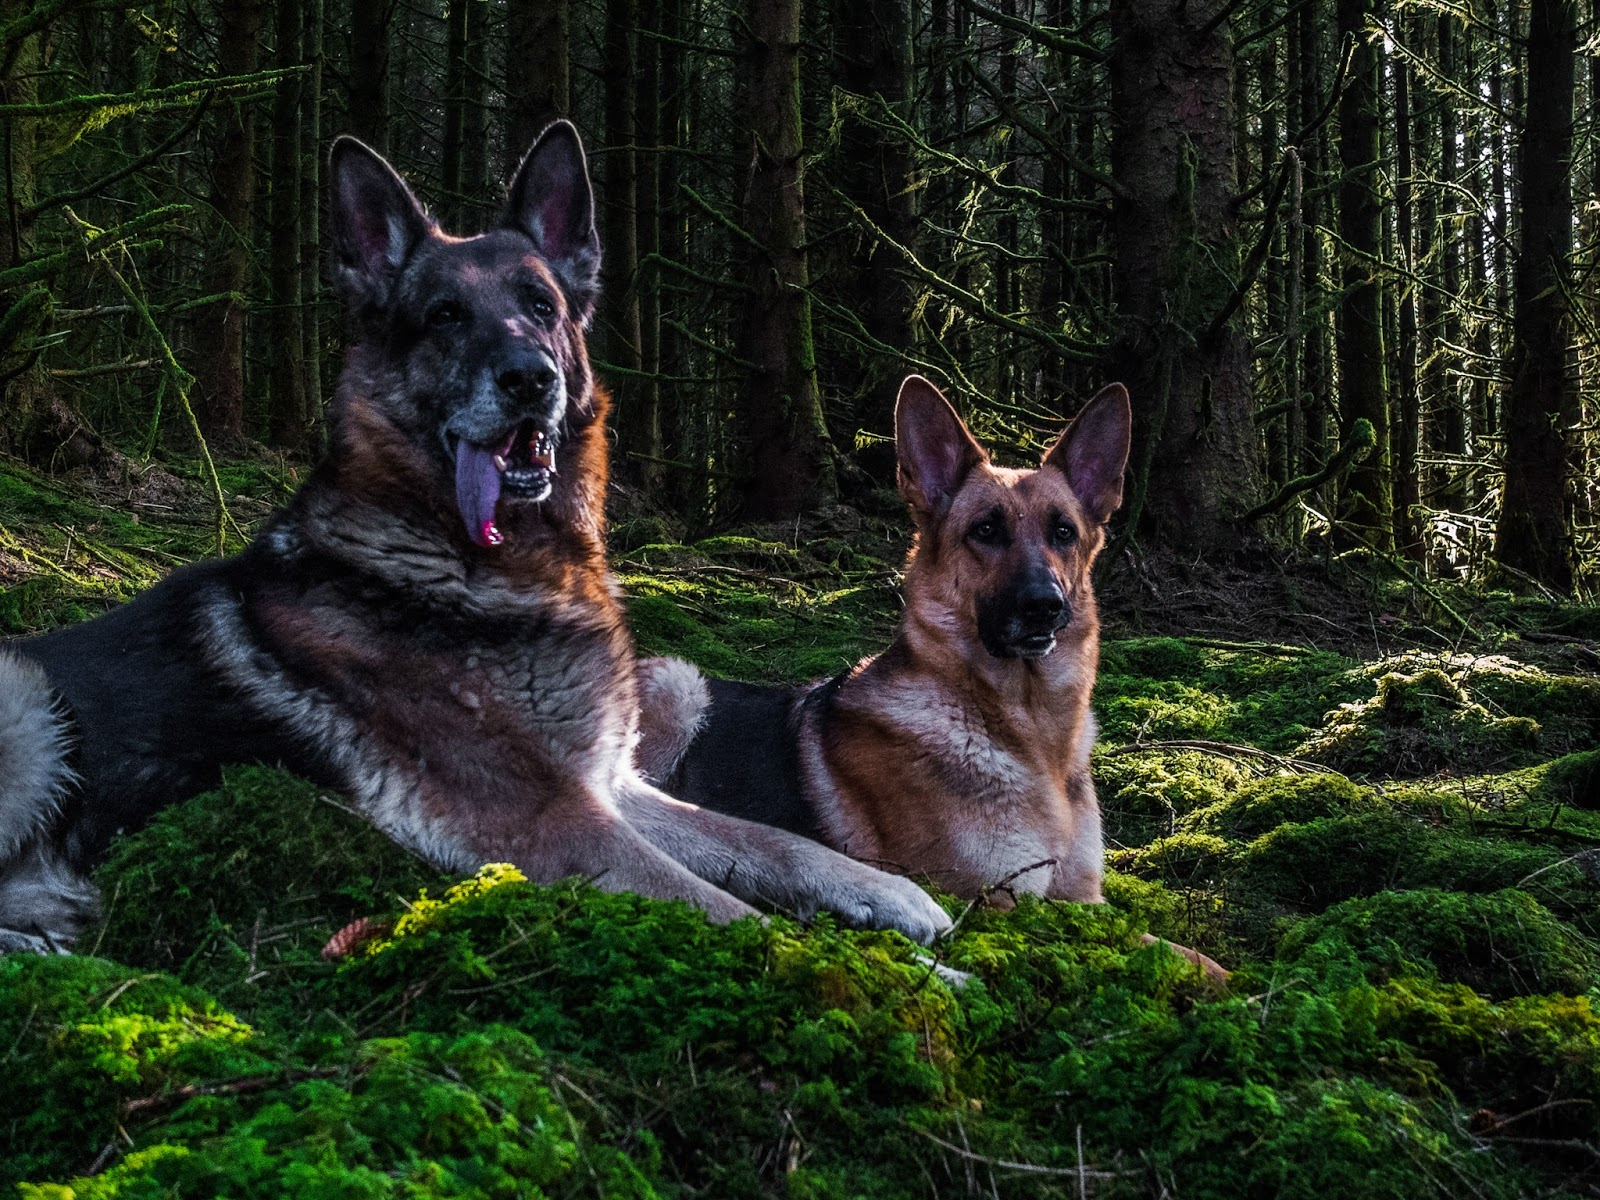 German Shepherd pair lying on moss in a forest.